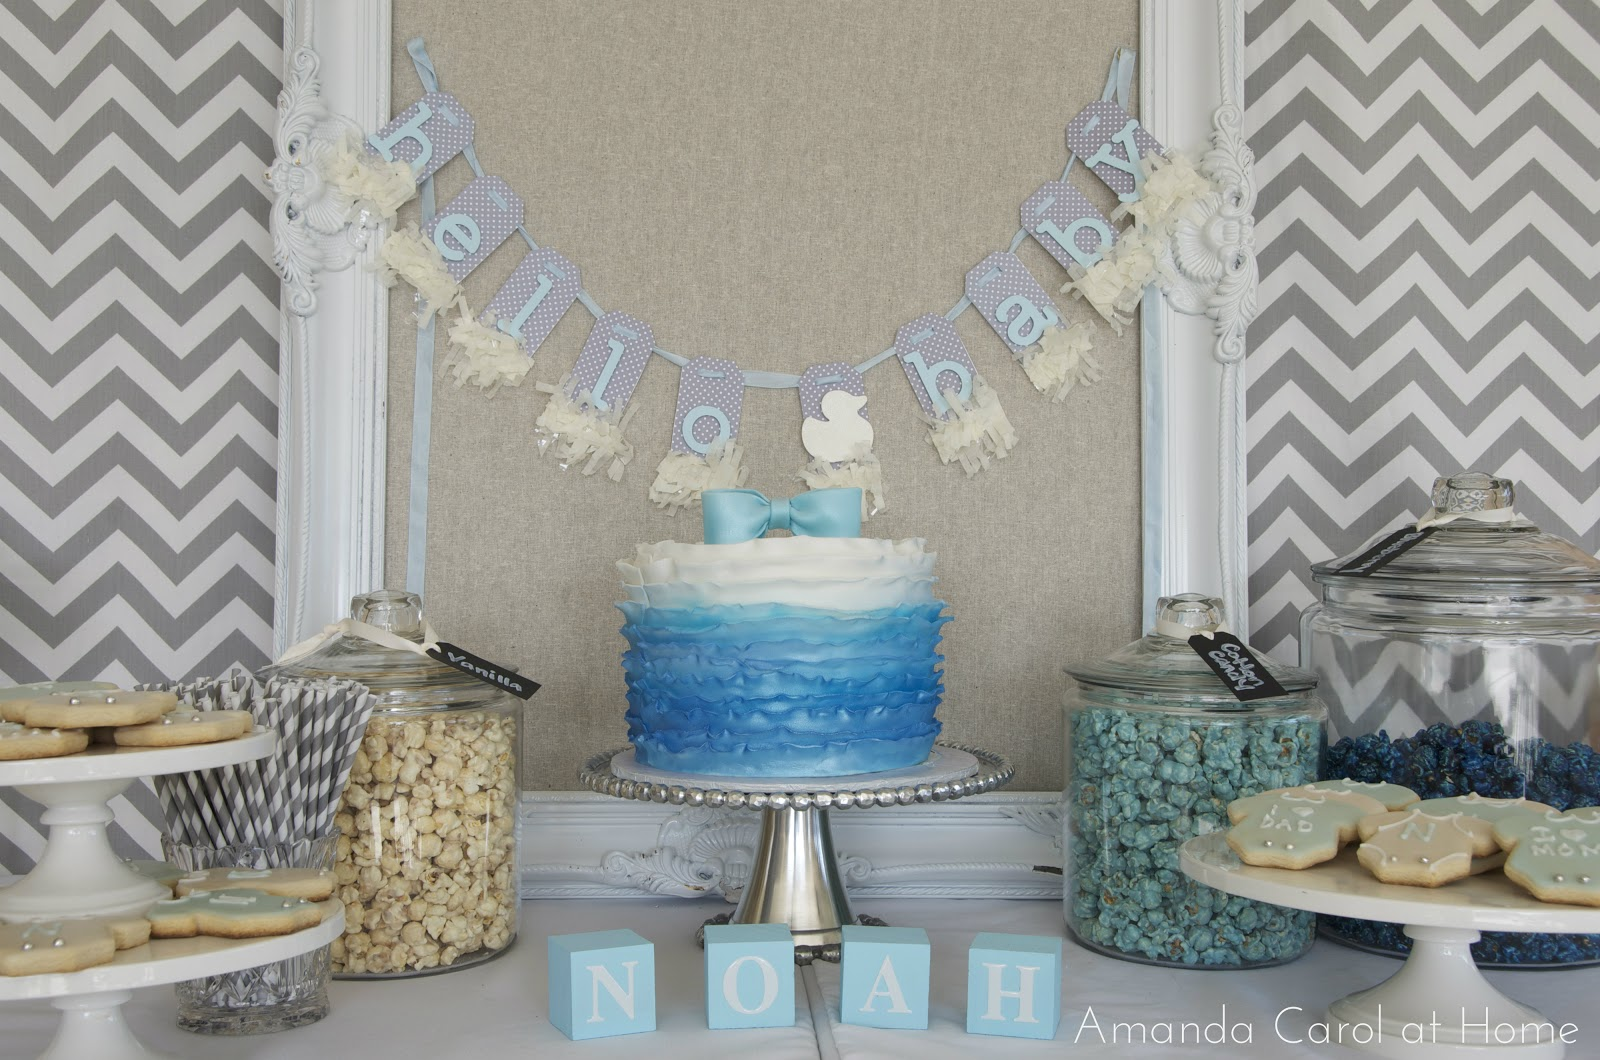 Blue White And Grey Themed Baby Shower With Pops Of Yellow Duckies